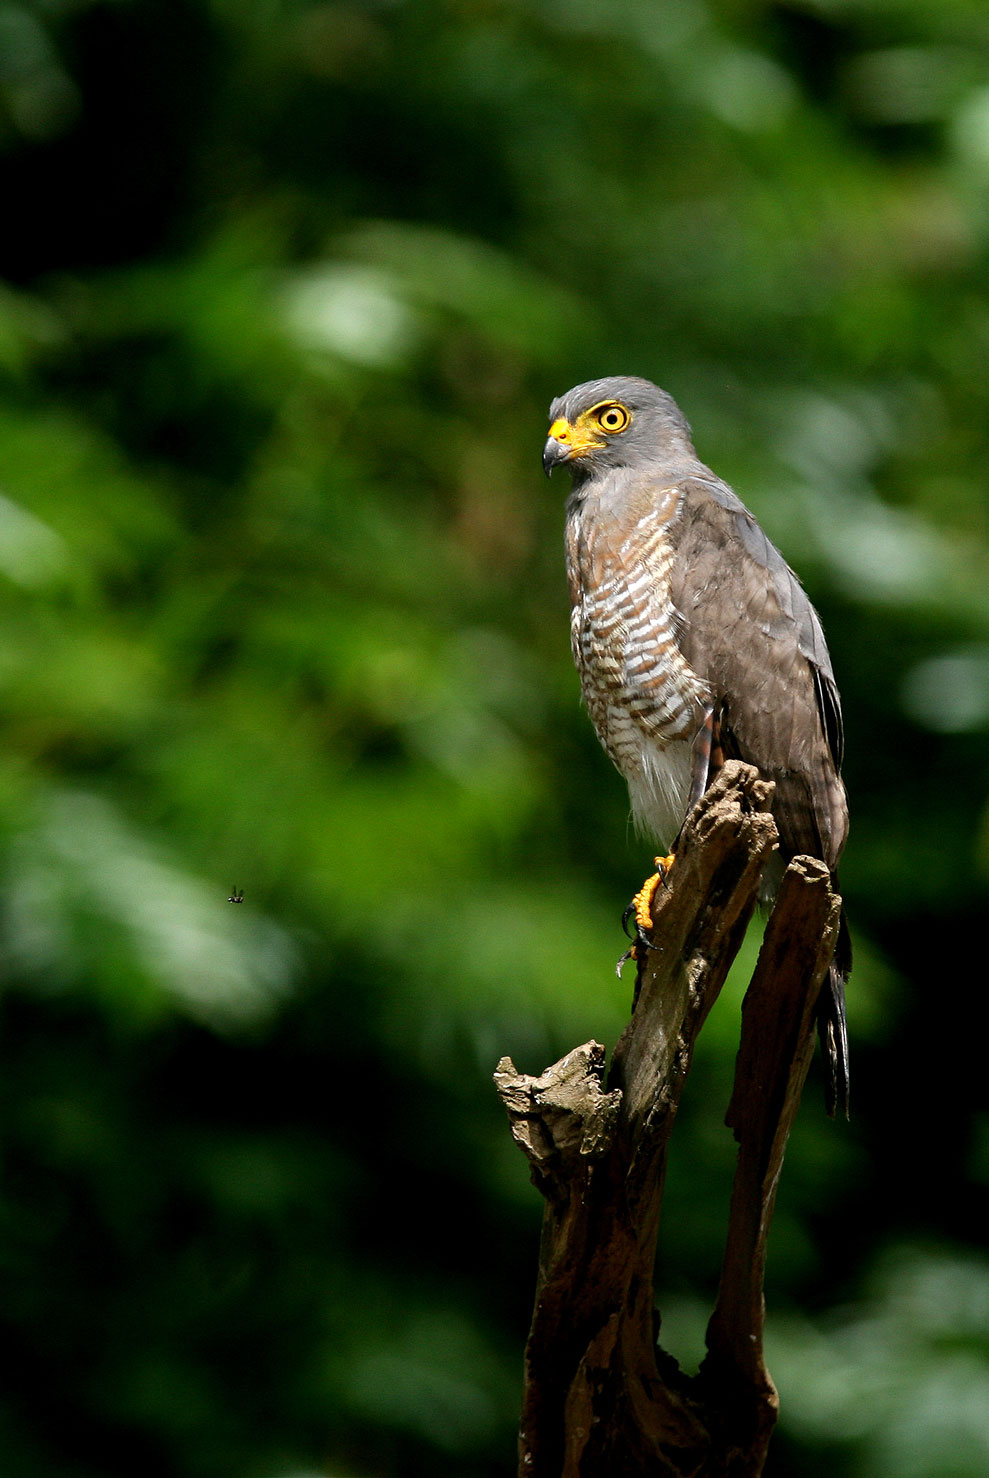 Photos of the bird watching program of the Inkaterra hotel.